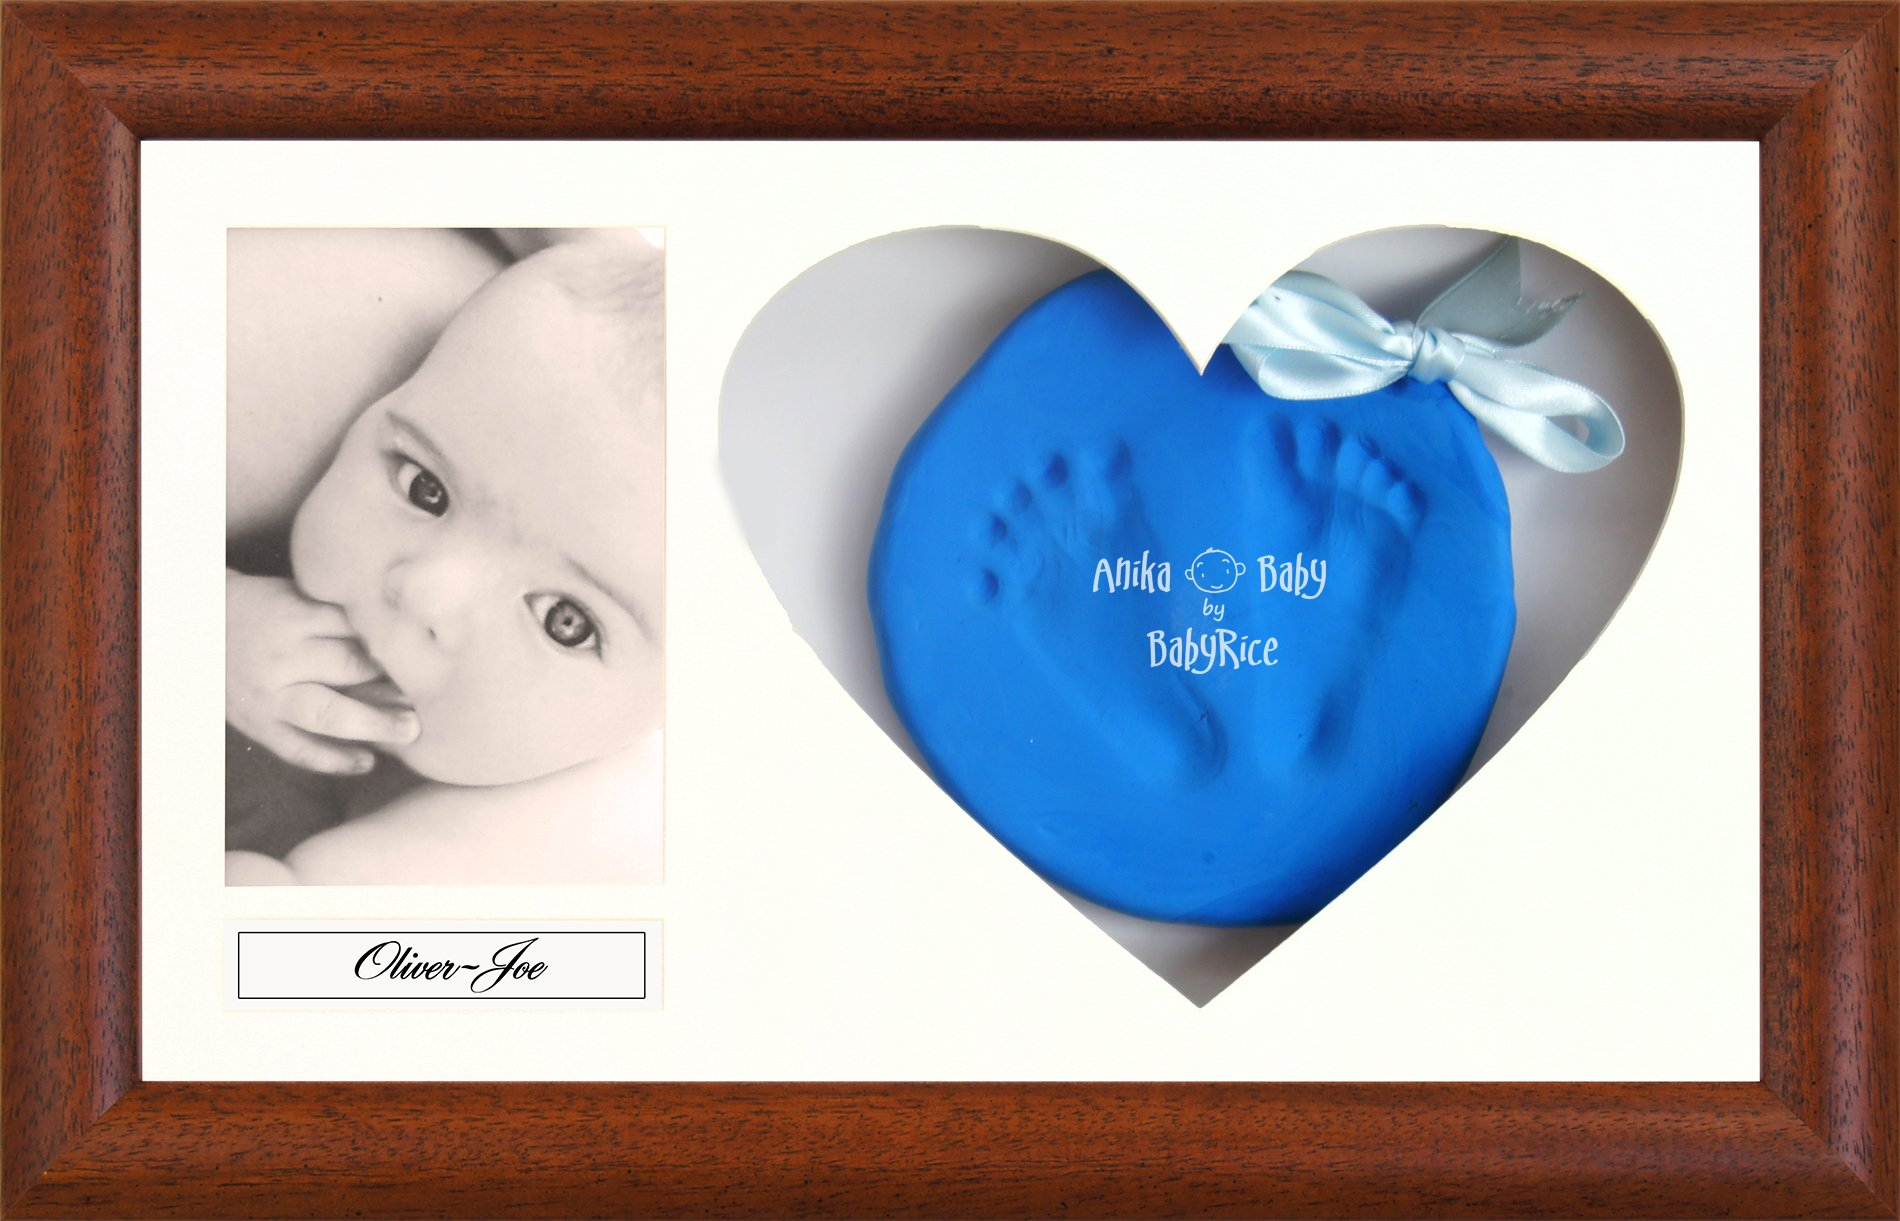 BabyRice Baby Soft Imprint Clay Hand & Footprint Kit / Dark Wood Effect Display Frame with Heart Mount - Choose Clay color (Royal Blue)